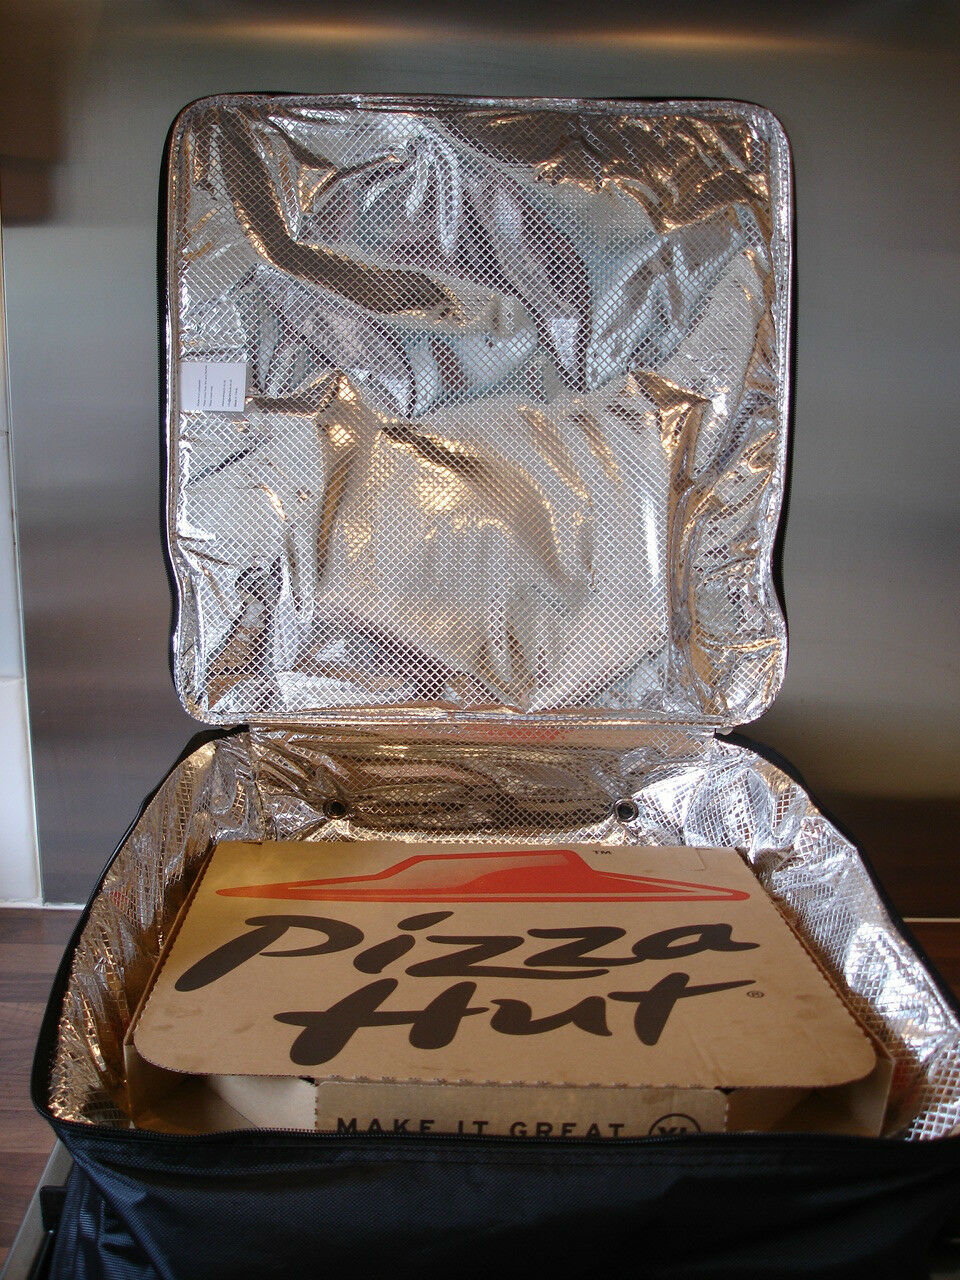 Pizza Delivery Bag 18 X 18 X 7 Fast Food Insulated